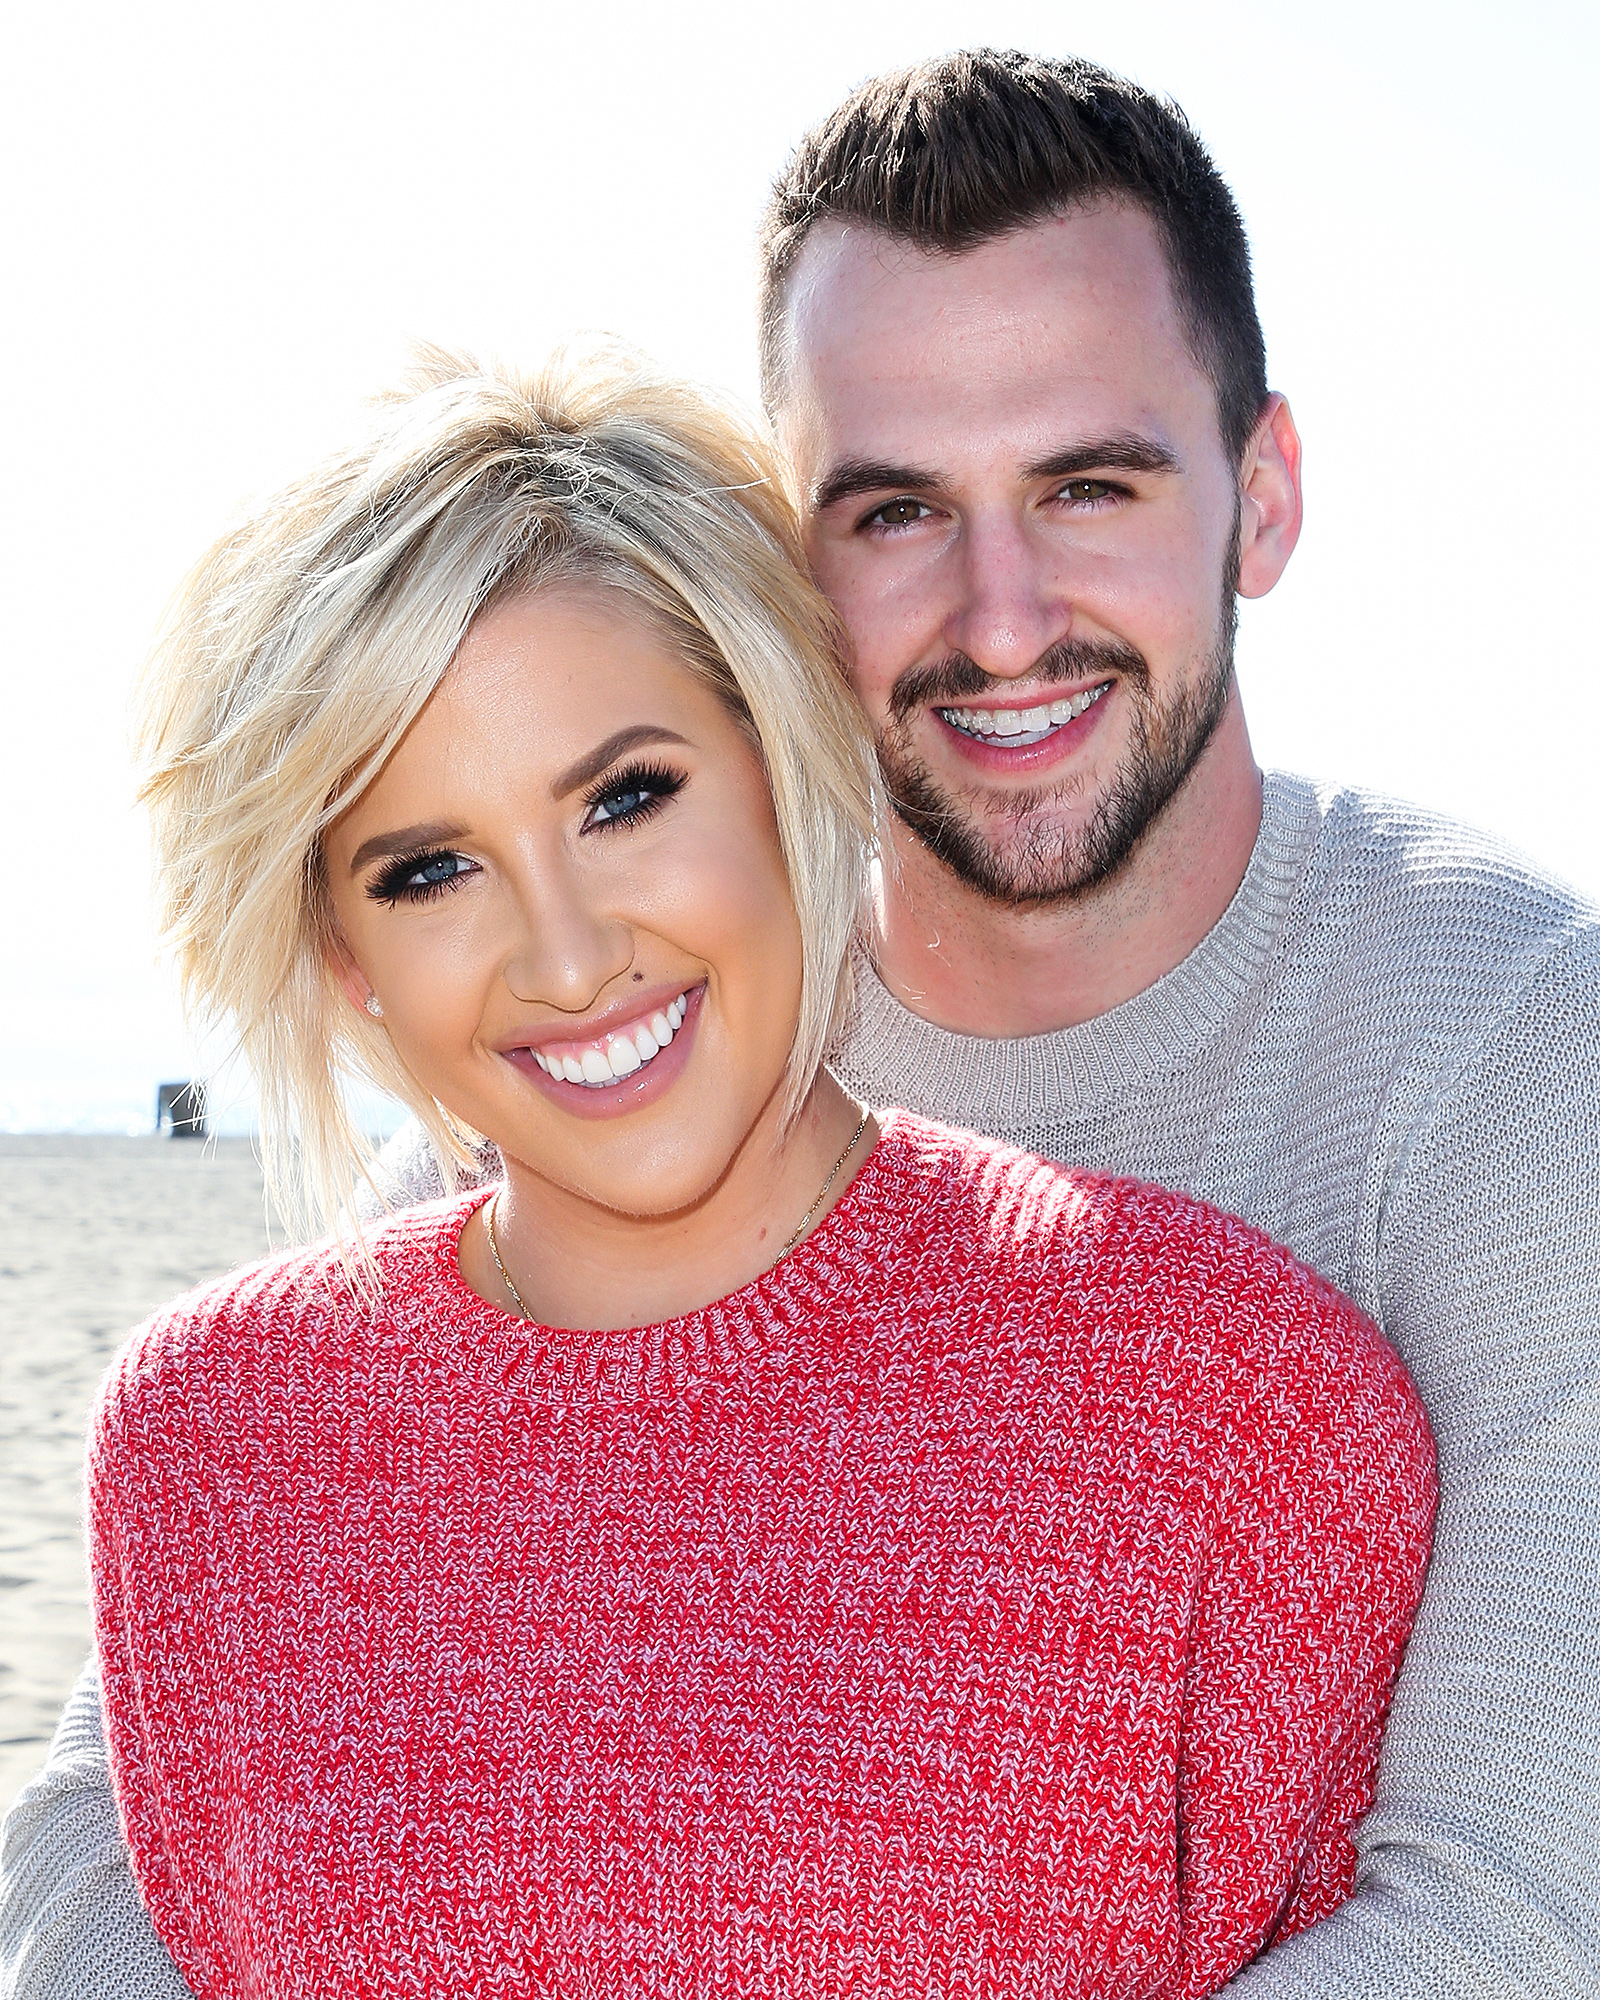 Growing Up Chrisley Savannah Chrisley And Nic Kerdiles Reconciled After Pride Failed Their Engagement!